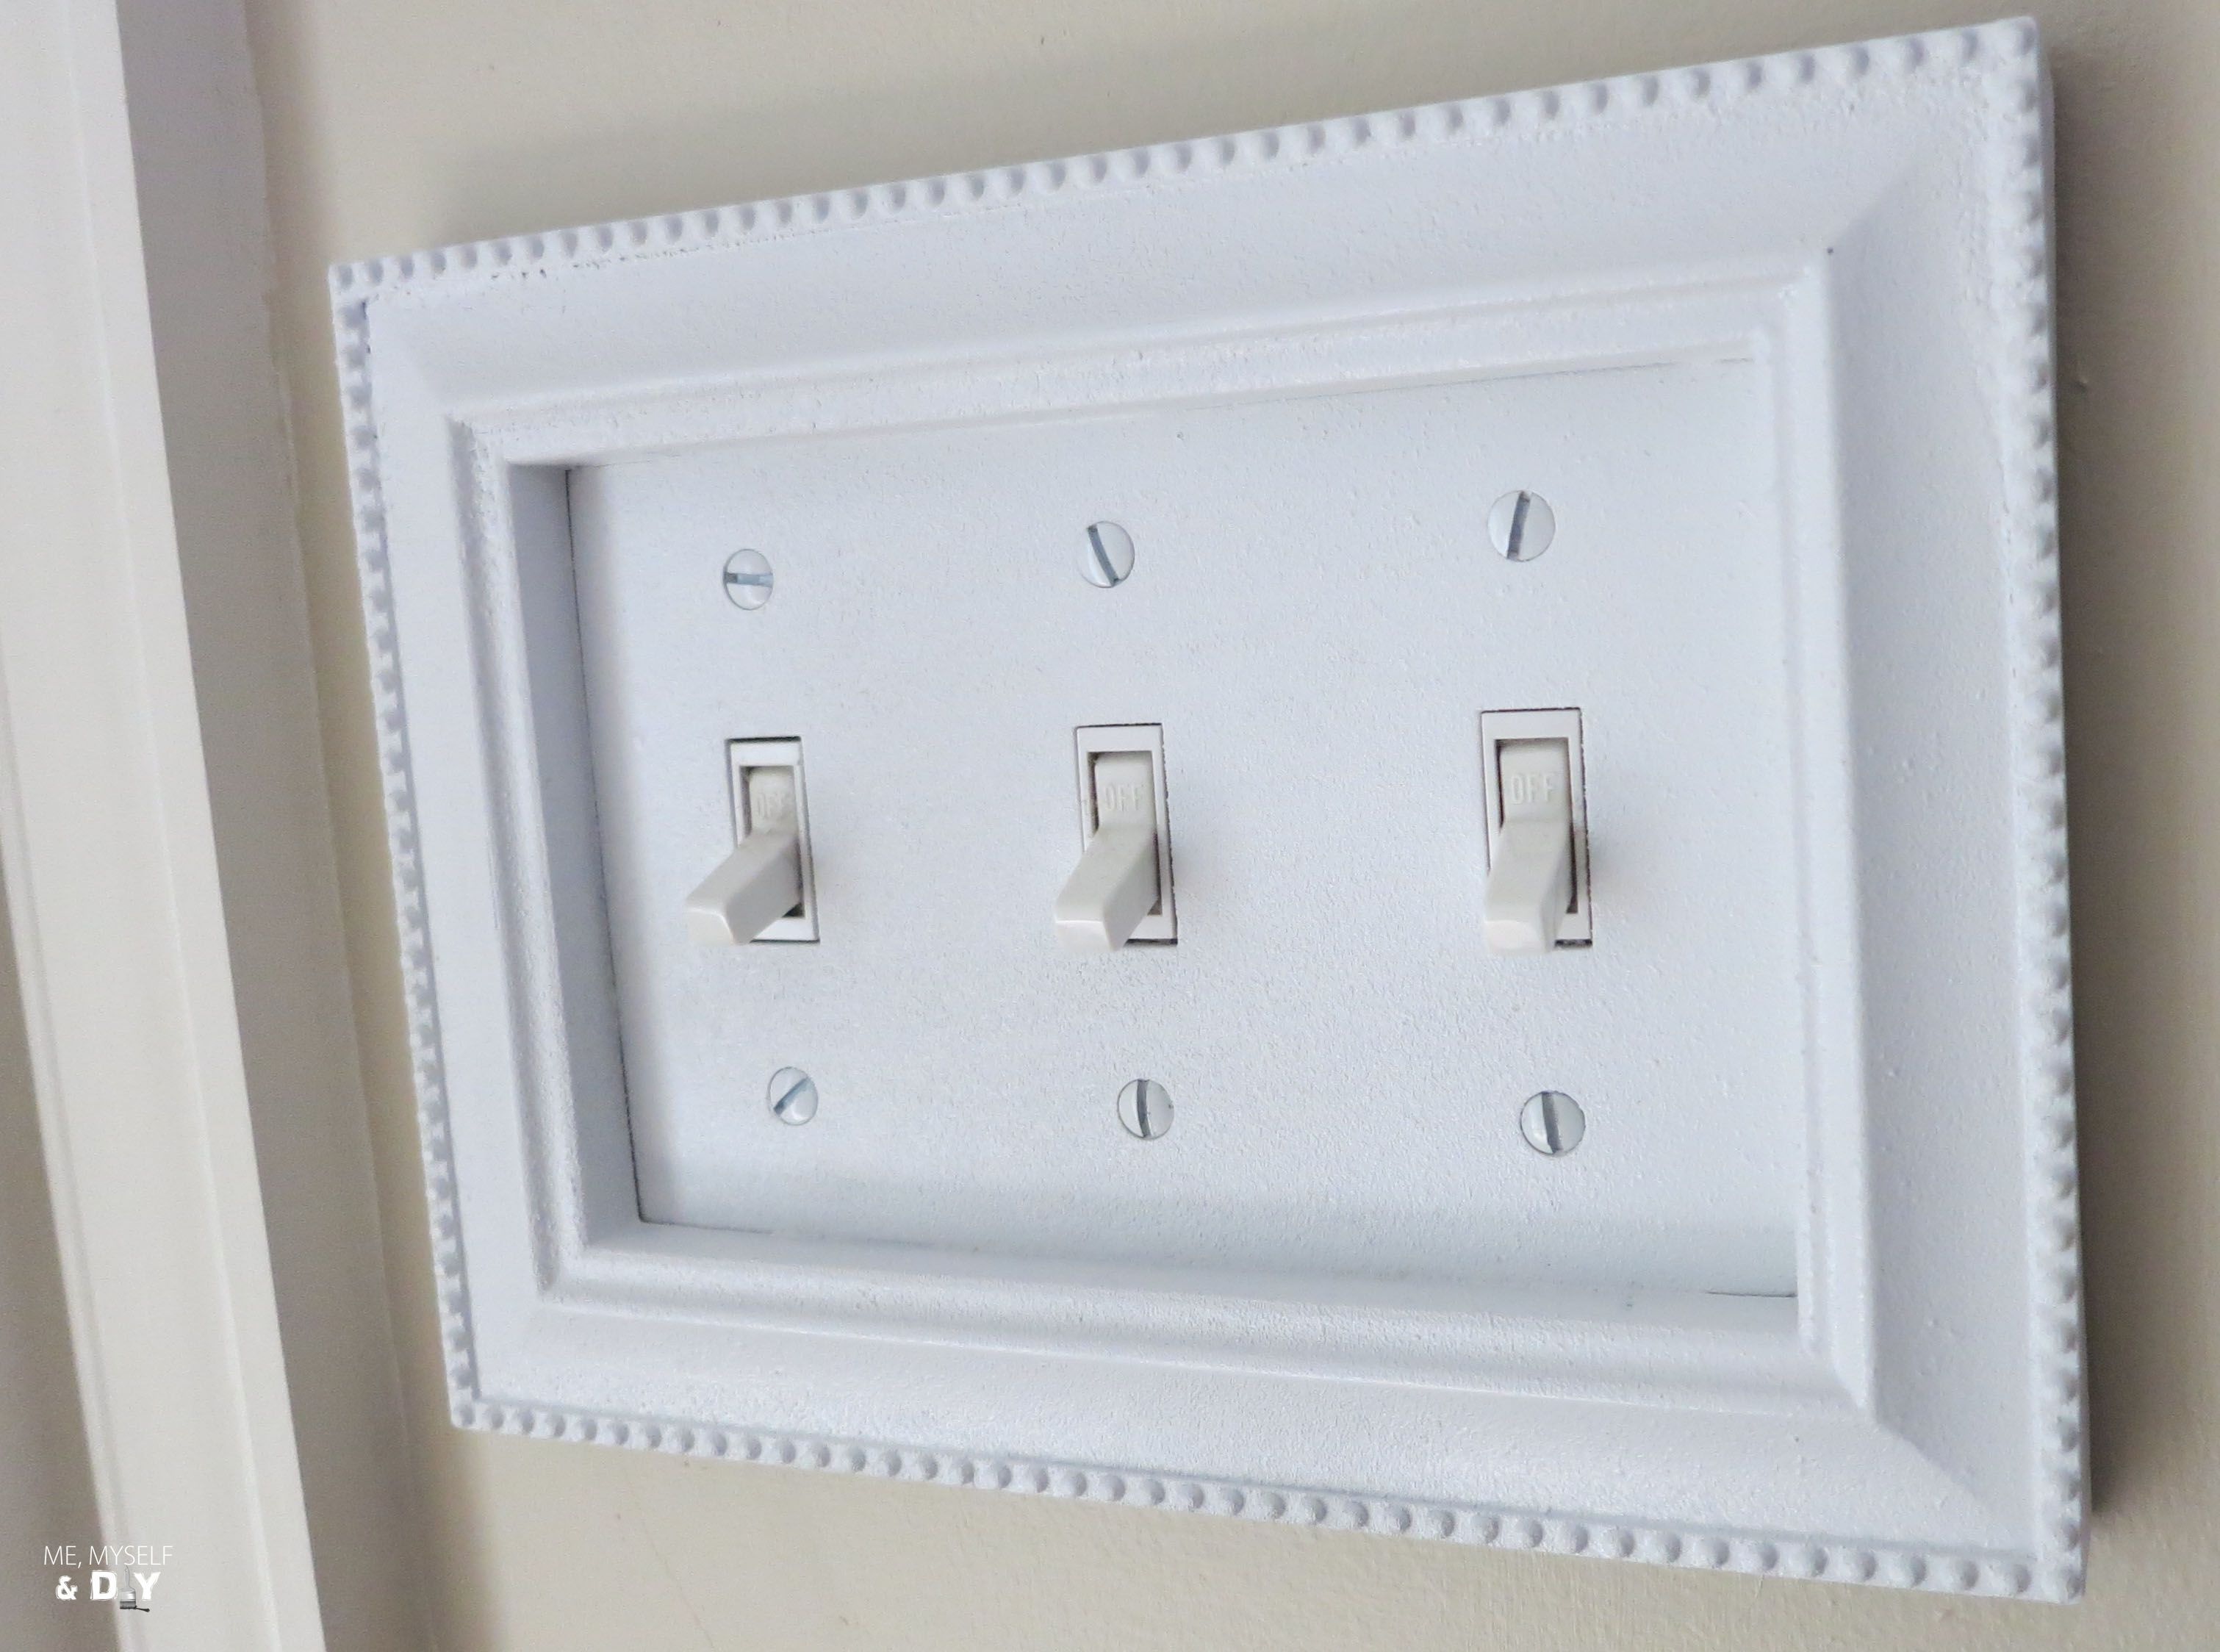 I Ve Always Wanted To Diy Switch Plate Update Light Switch Covers Diy Light Switch Covers Cheap Diy